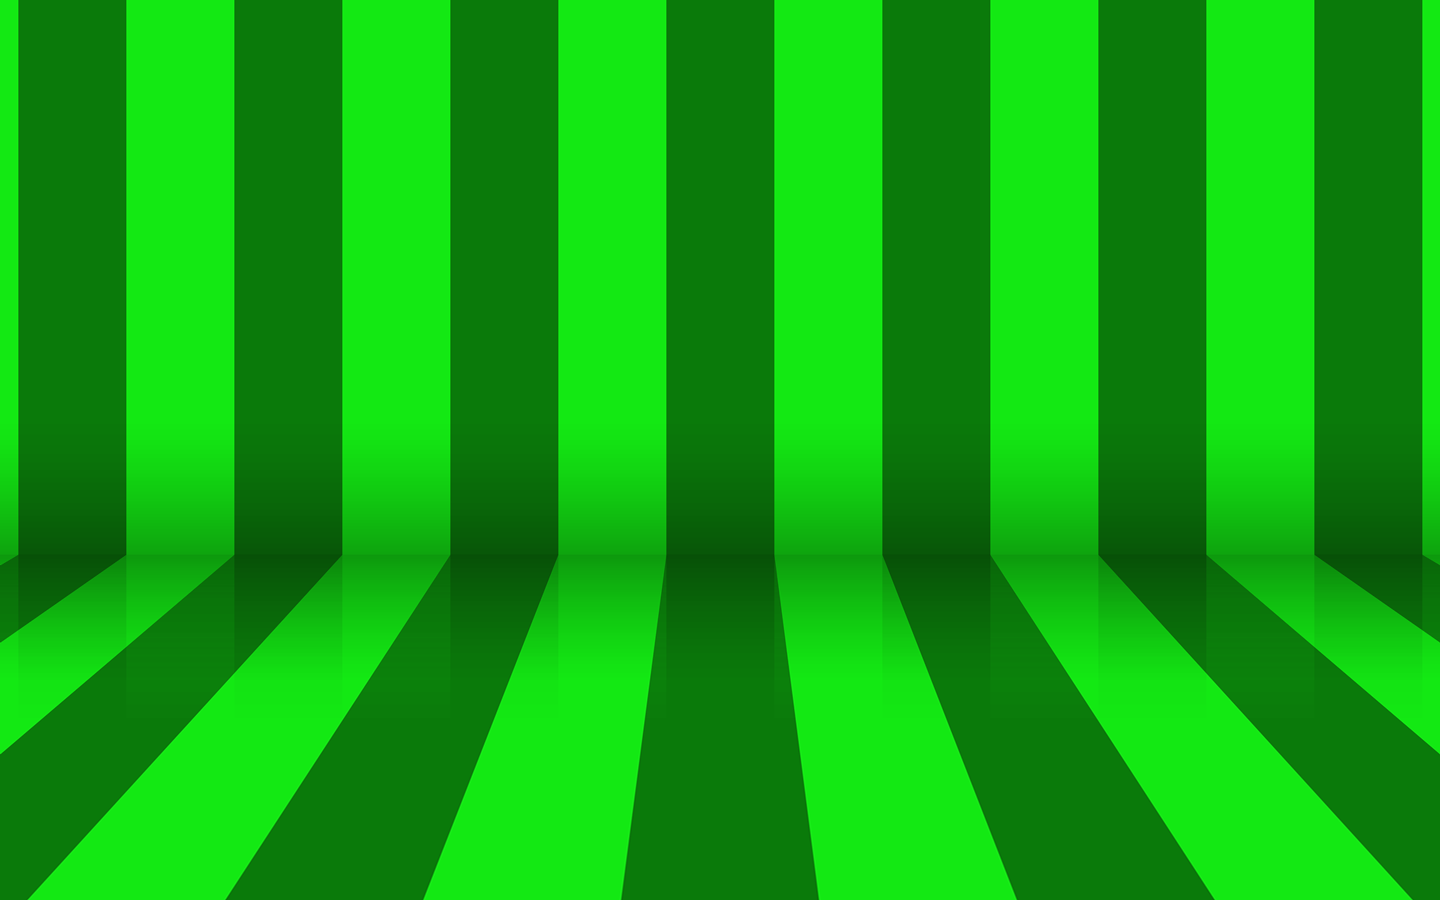 Cool Green Png - Cool green background - SF Wallpaper